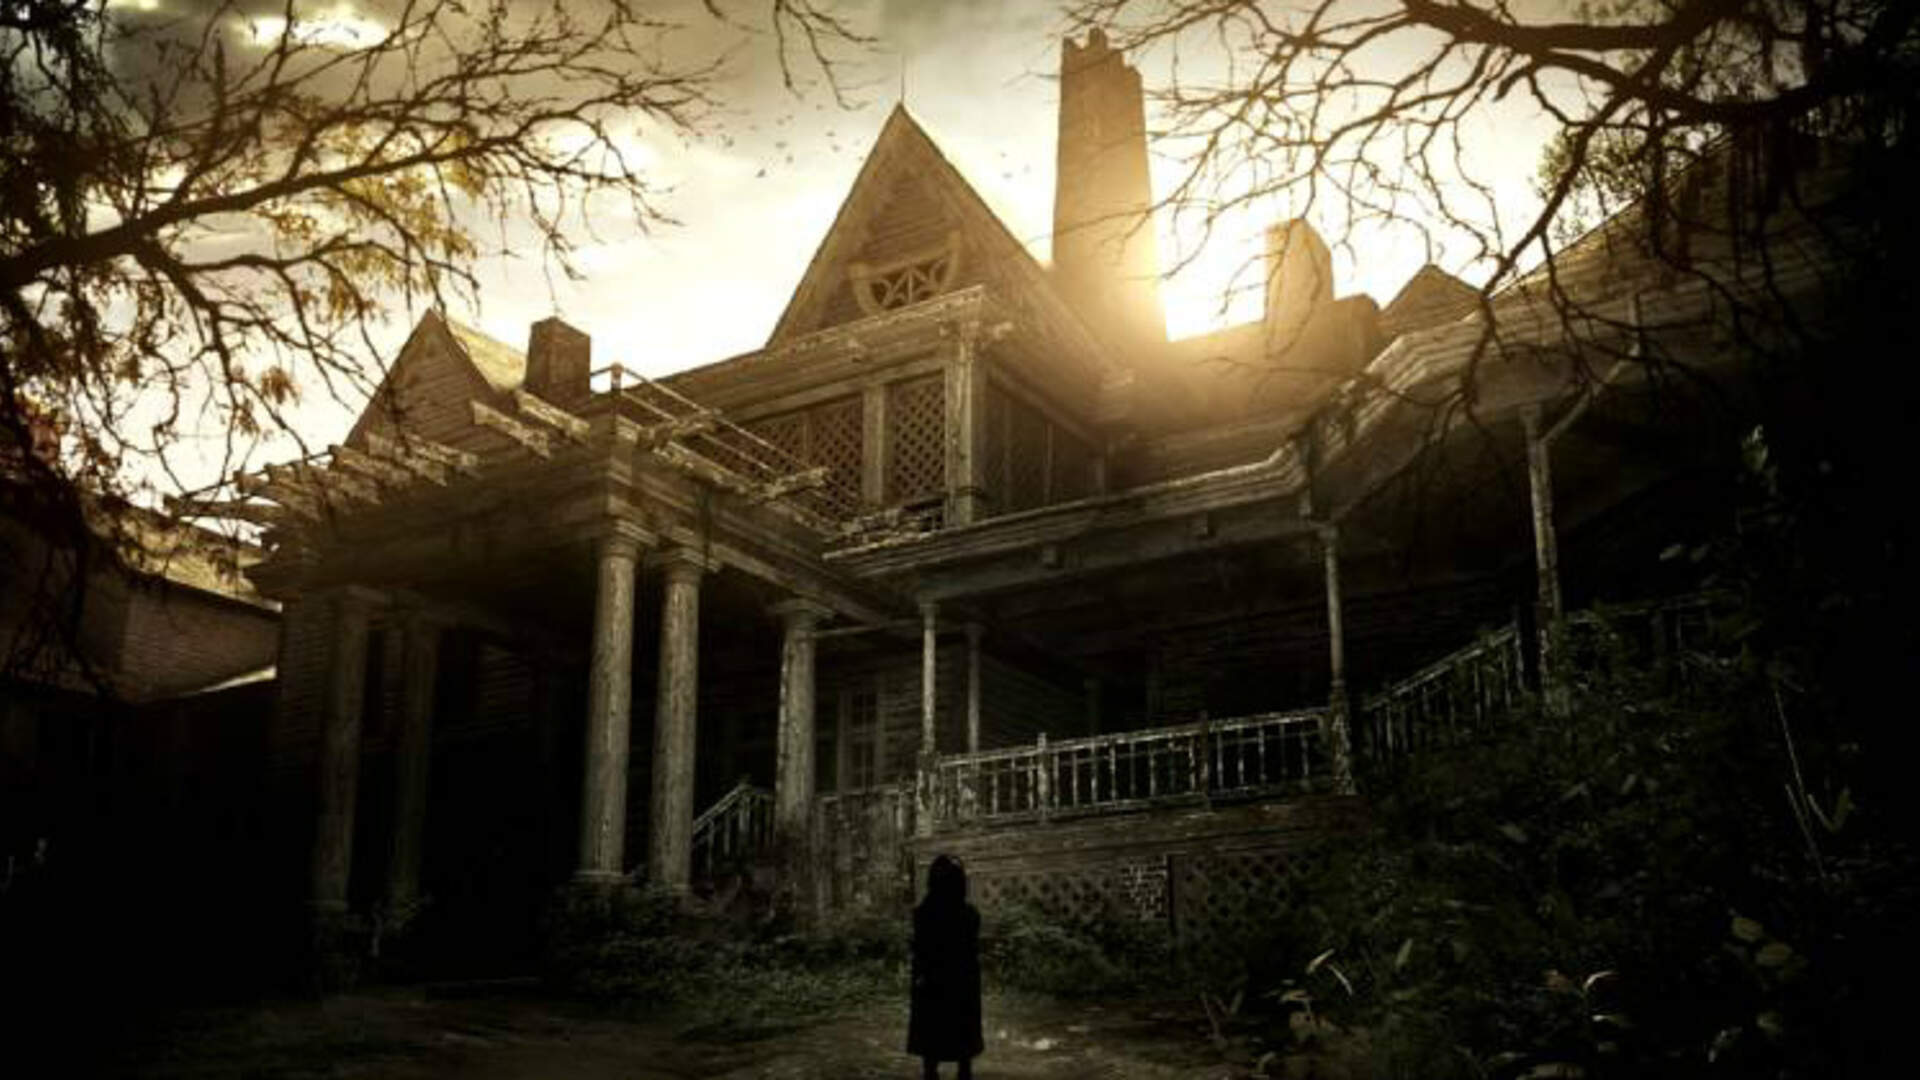 Resident Evil 7 Isn't Inspired By PT, But Capcom Did Consider a Supernatural Focus